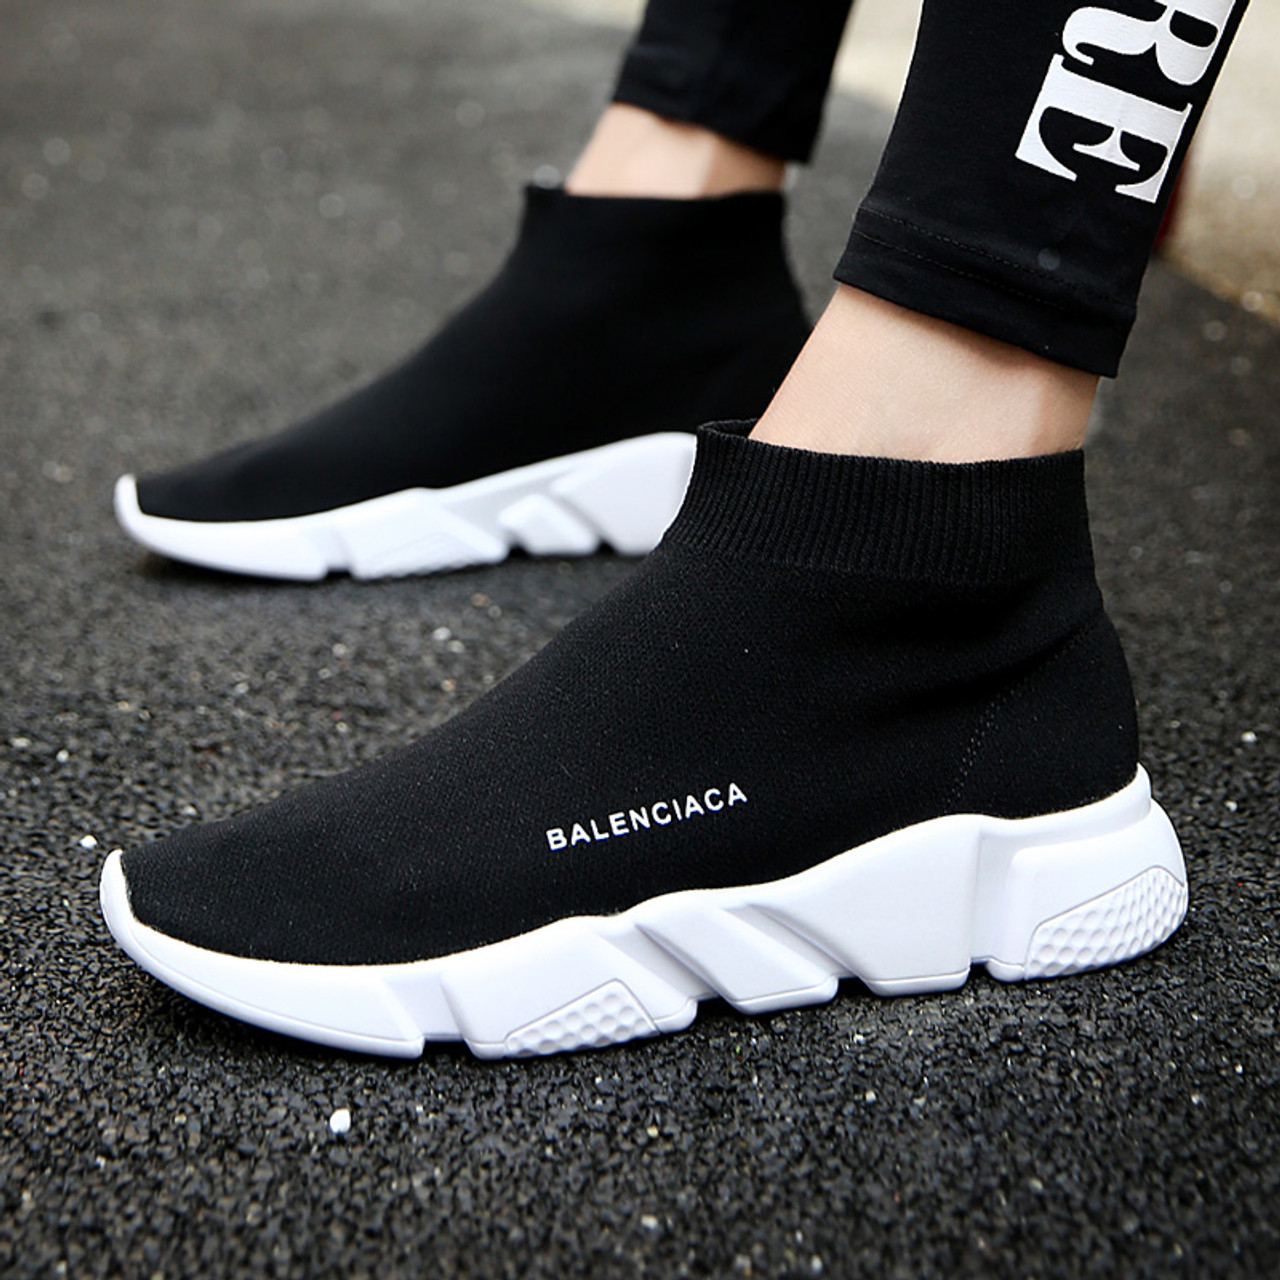 a5bd6fea53f0 ... summer Brand sport athletic Running Shoe for Men woman unisex  breathable Mesh female sock Sneakers Outdoors ...